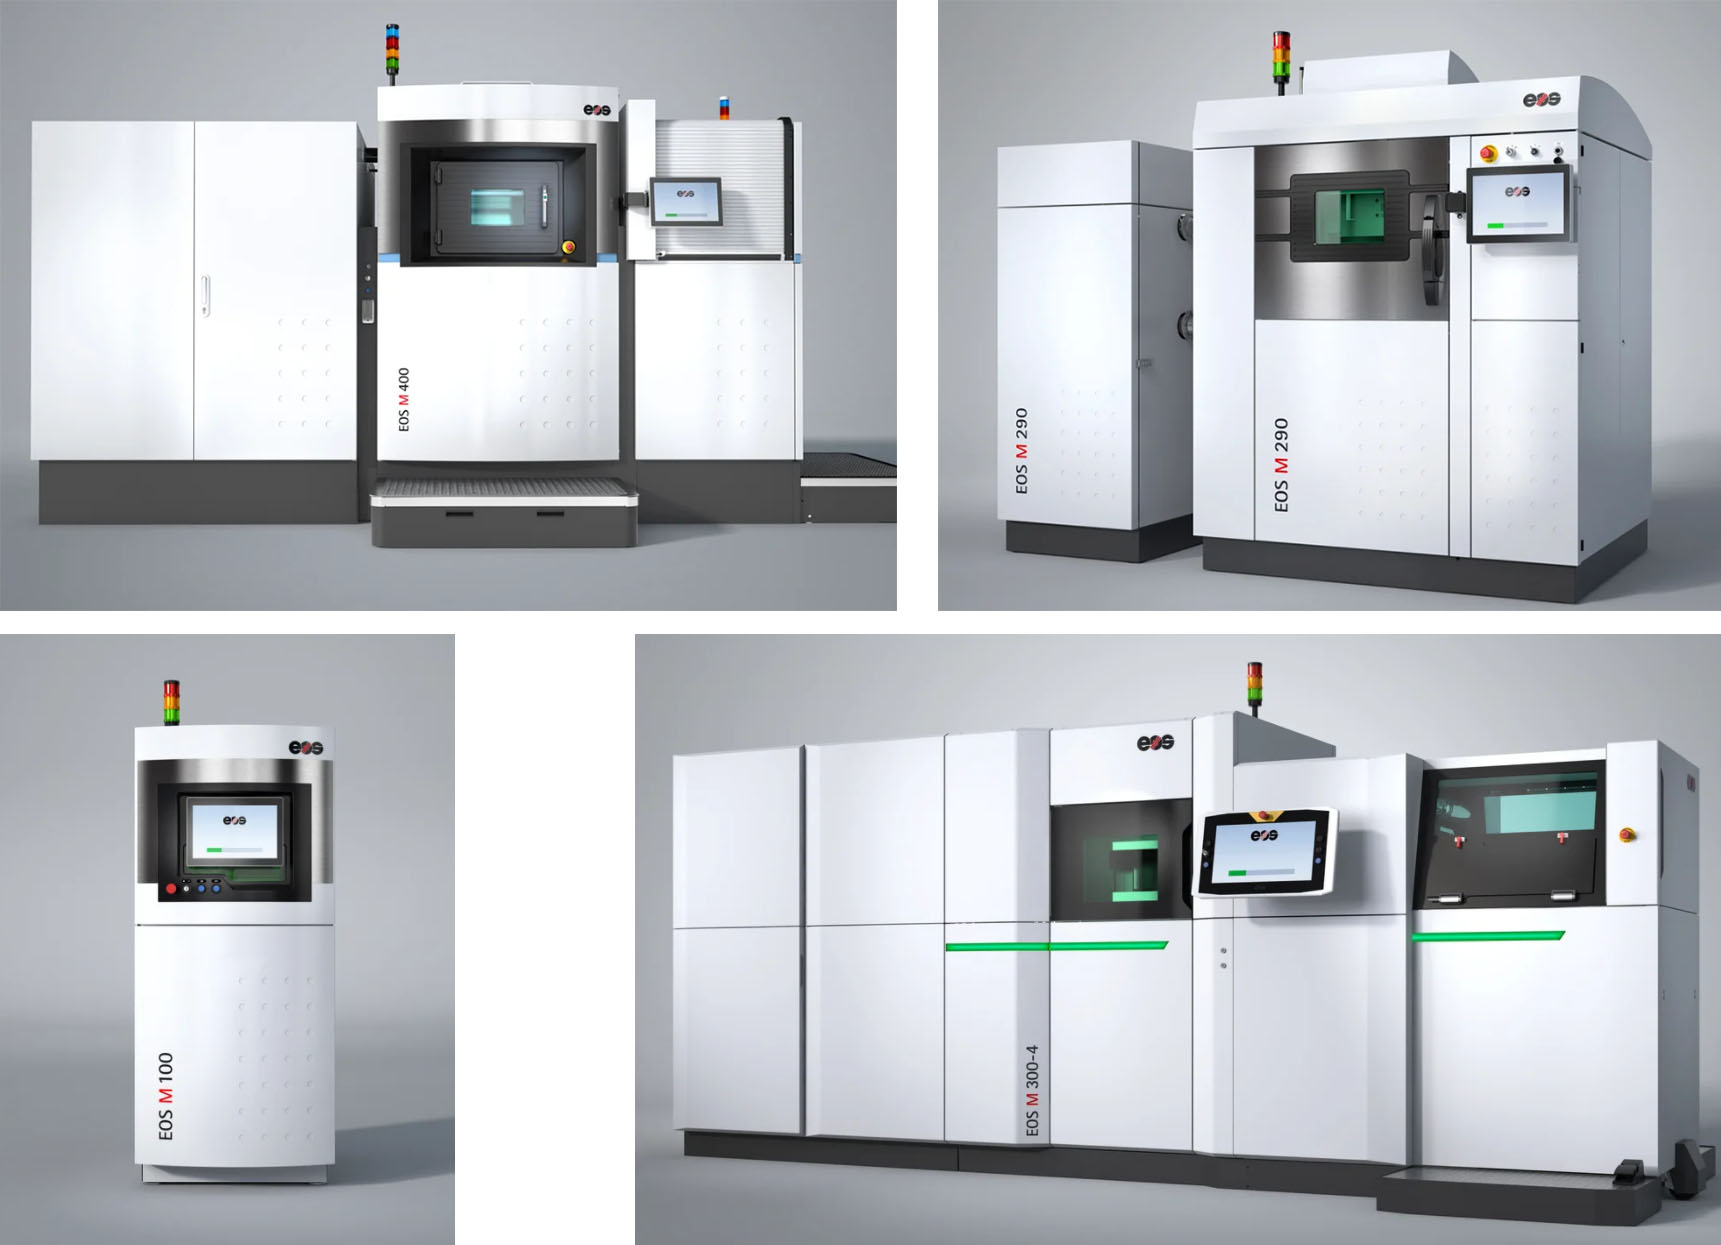 EOS' Metal Additive Manufacturing Systems